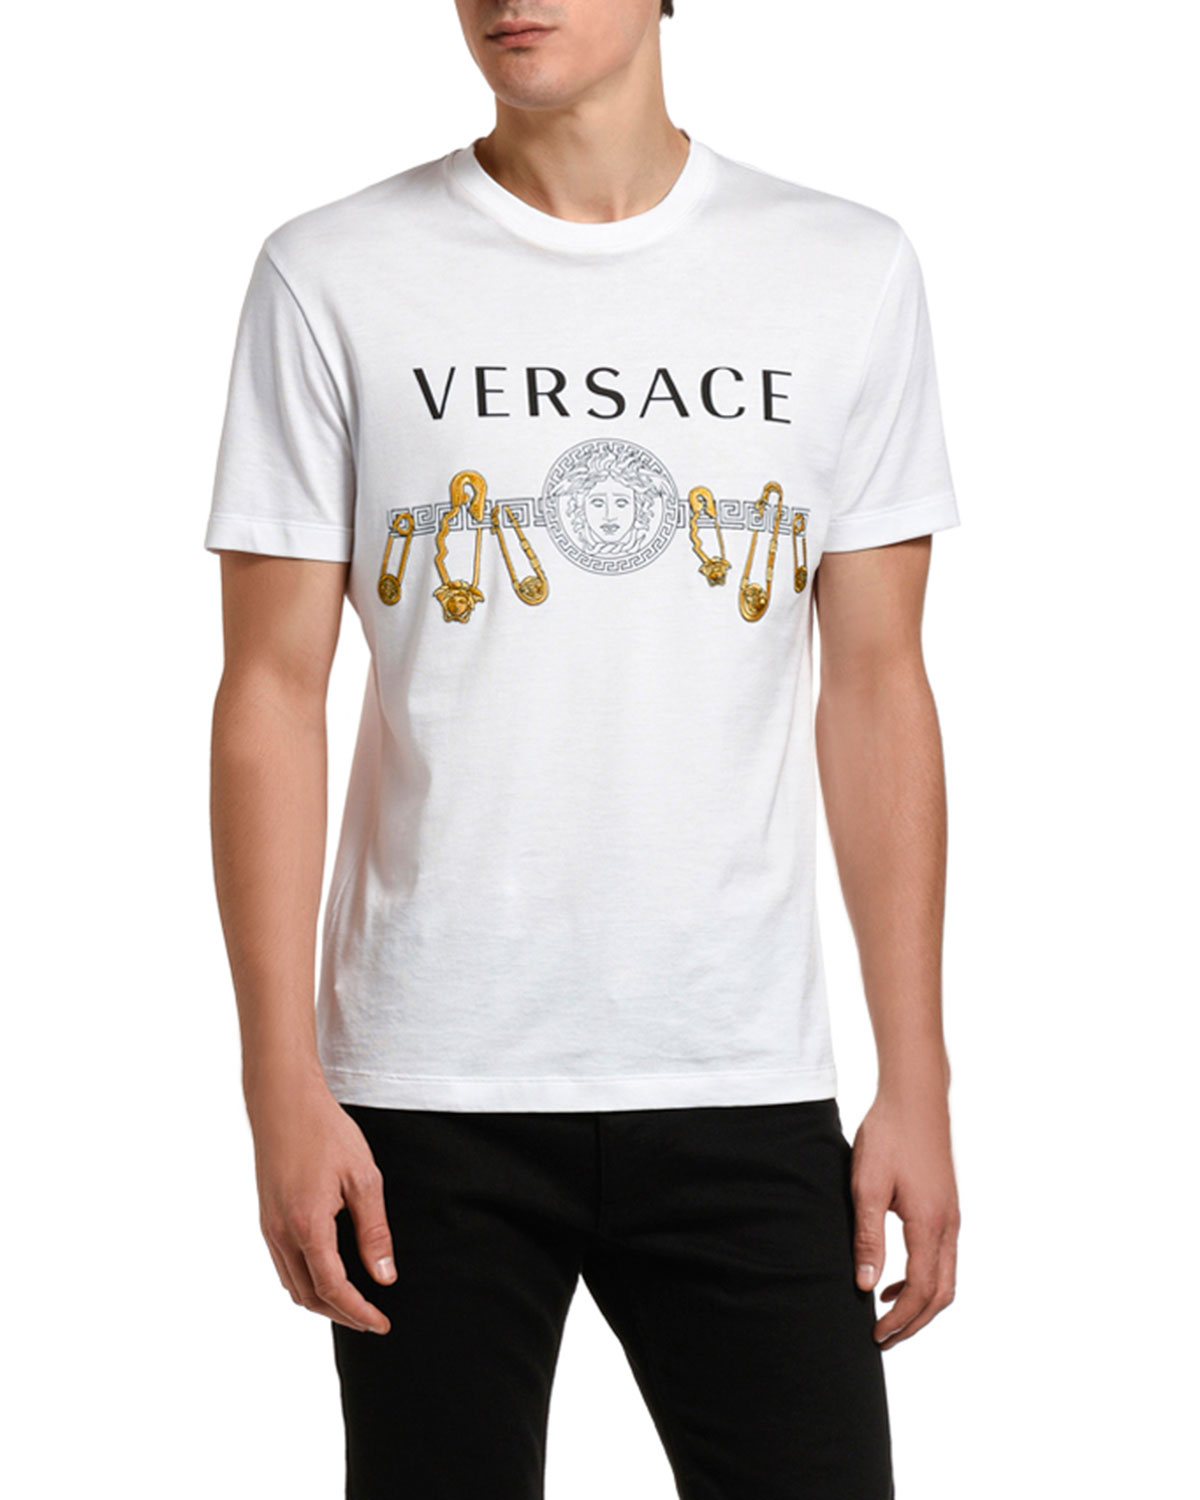 Versace Men's Safety Pin Graphic Tee